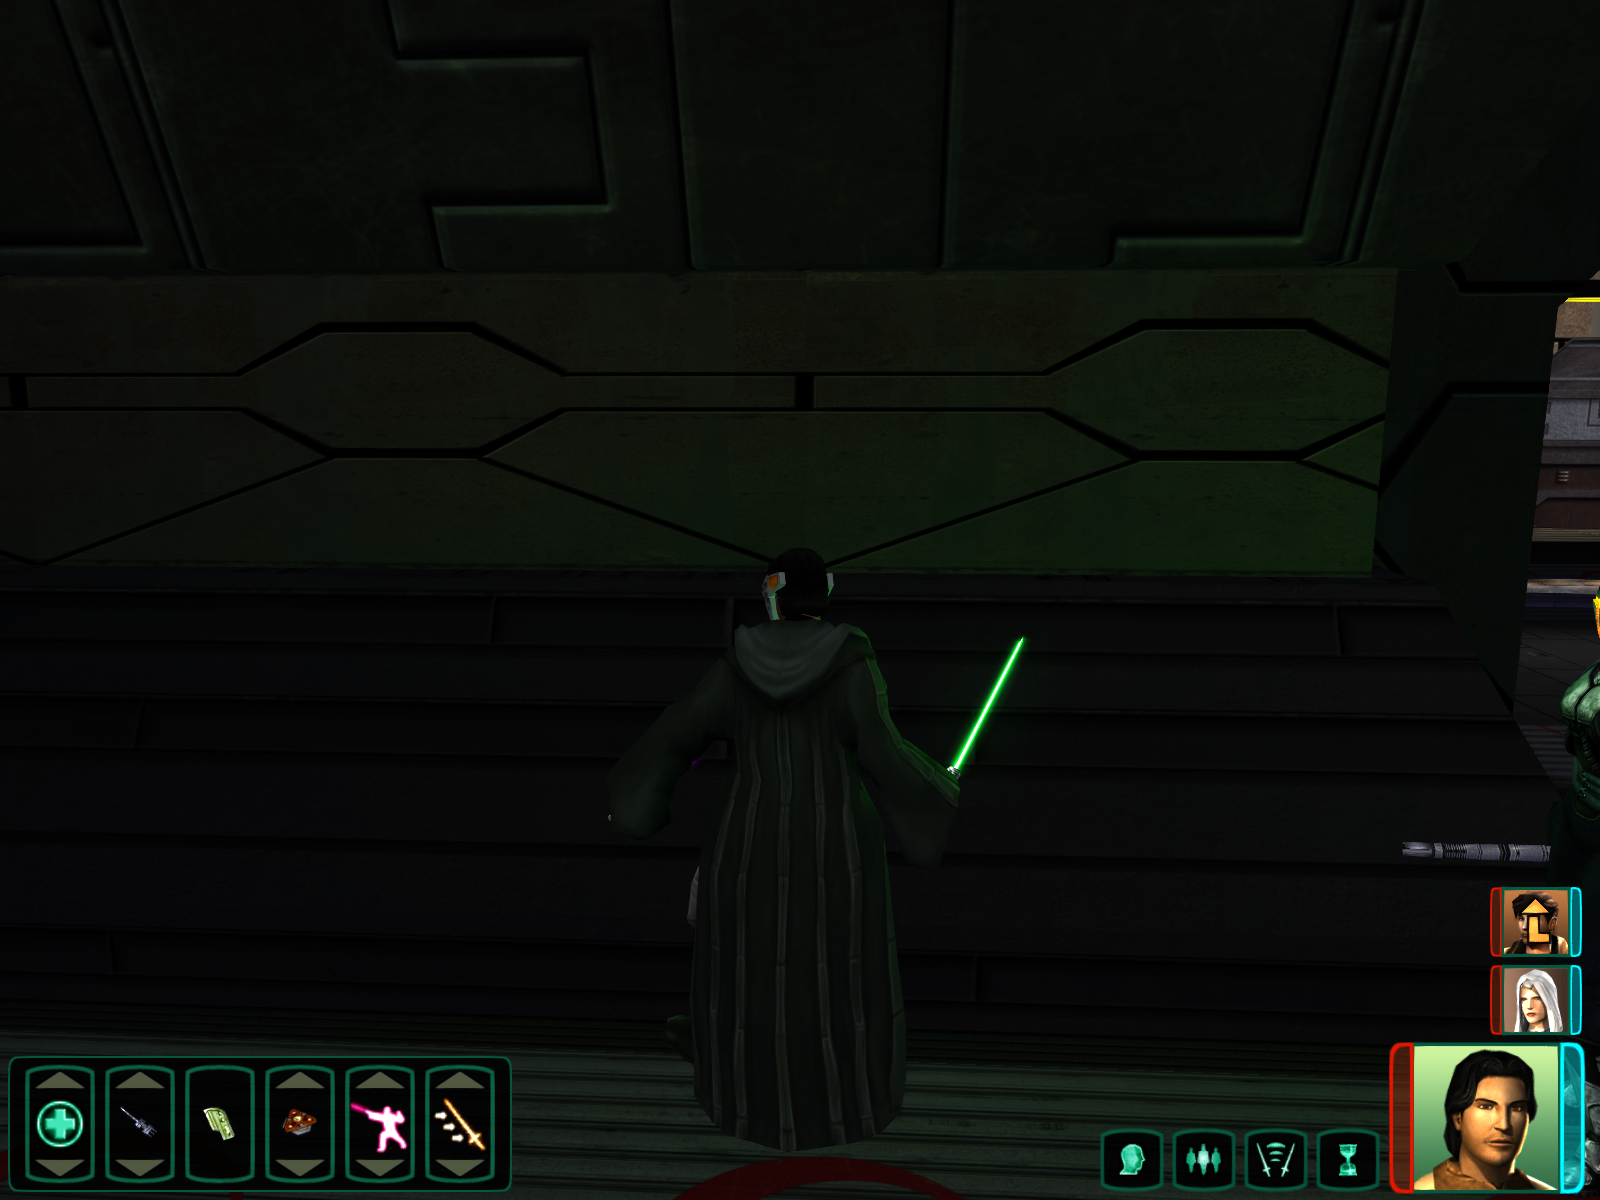 swkotor2 2020-04-20 21-42-07.png